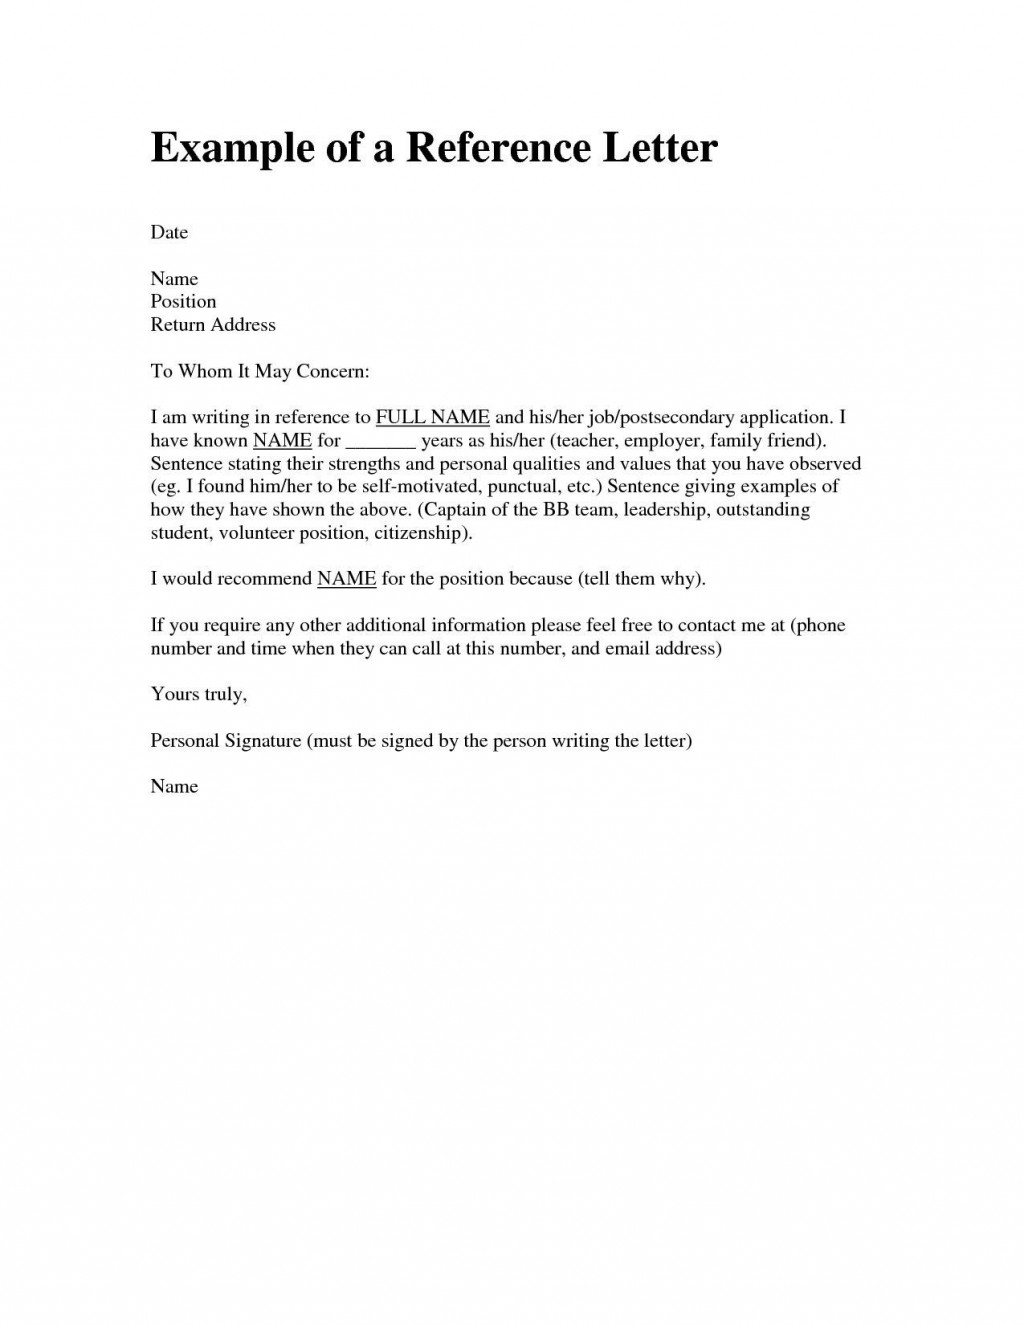 002 Magnificent Personal Reference Letter Template High Def  Character Word For Rental ApplicationLarge